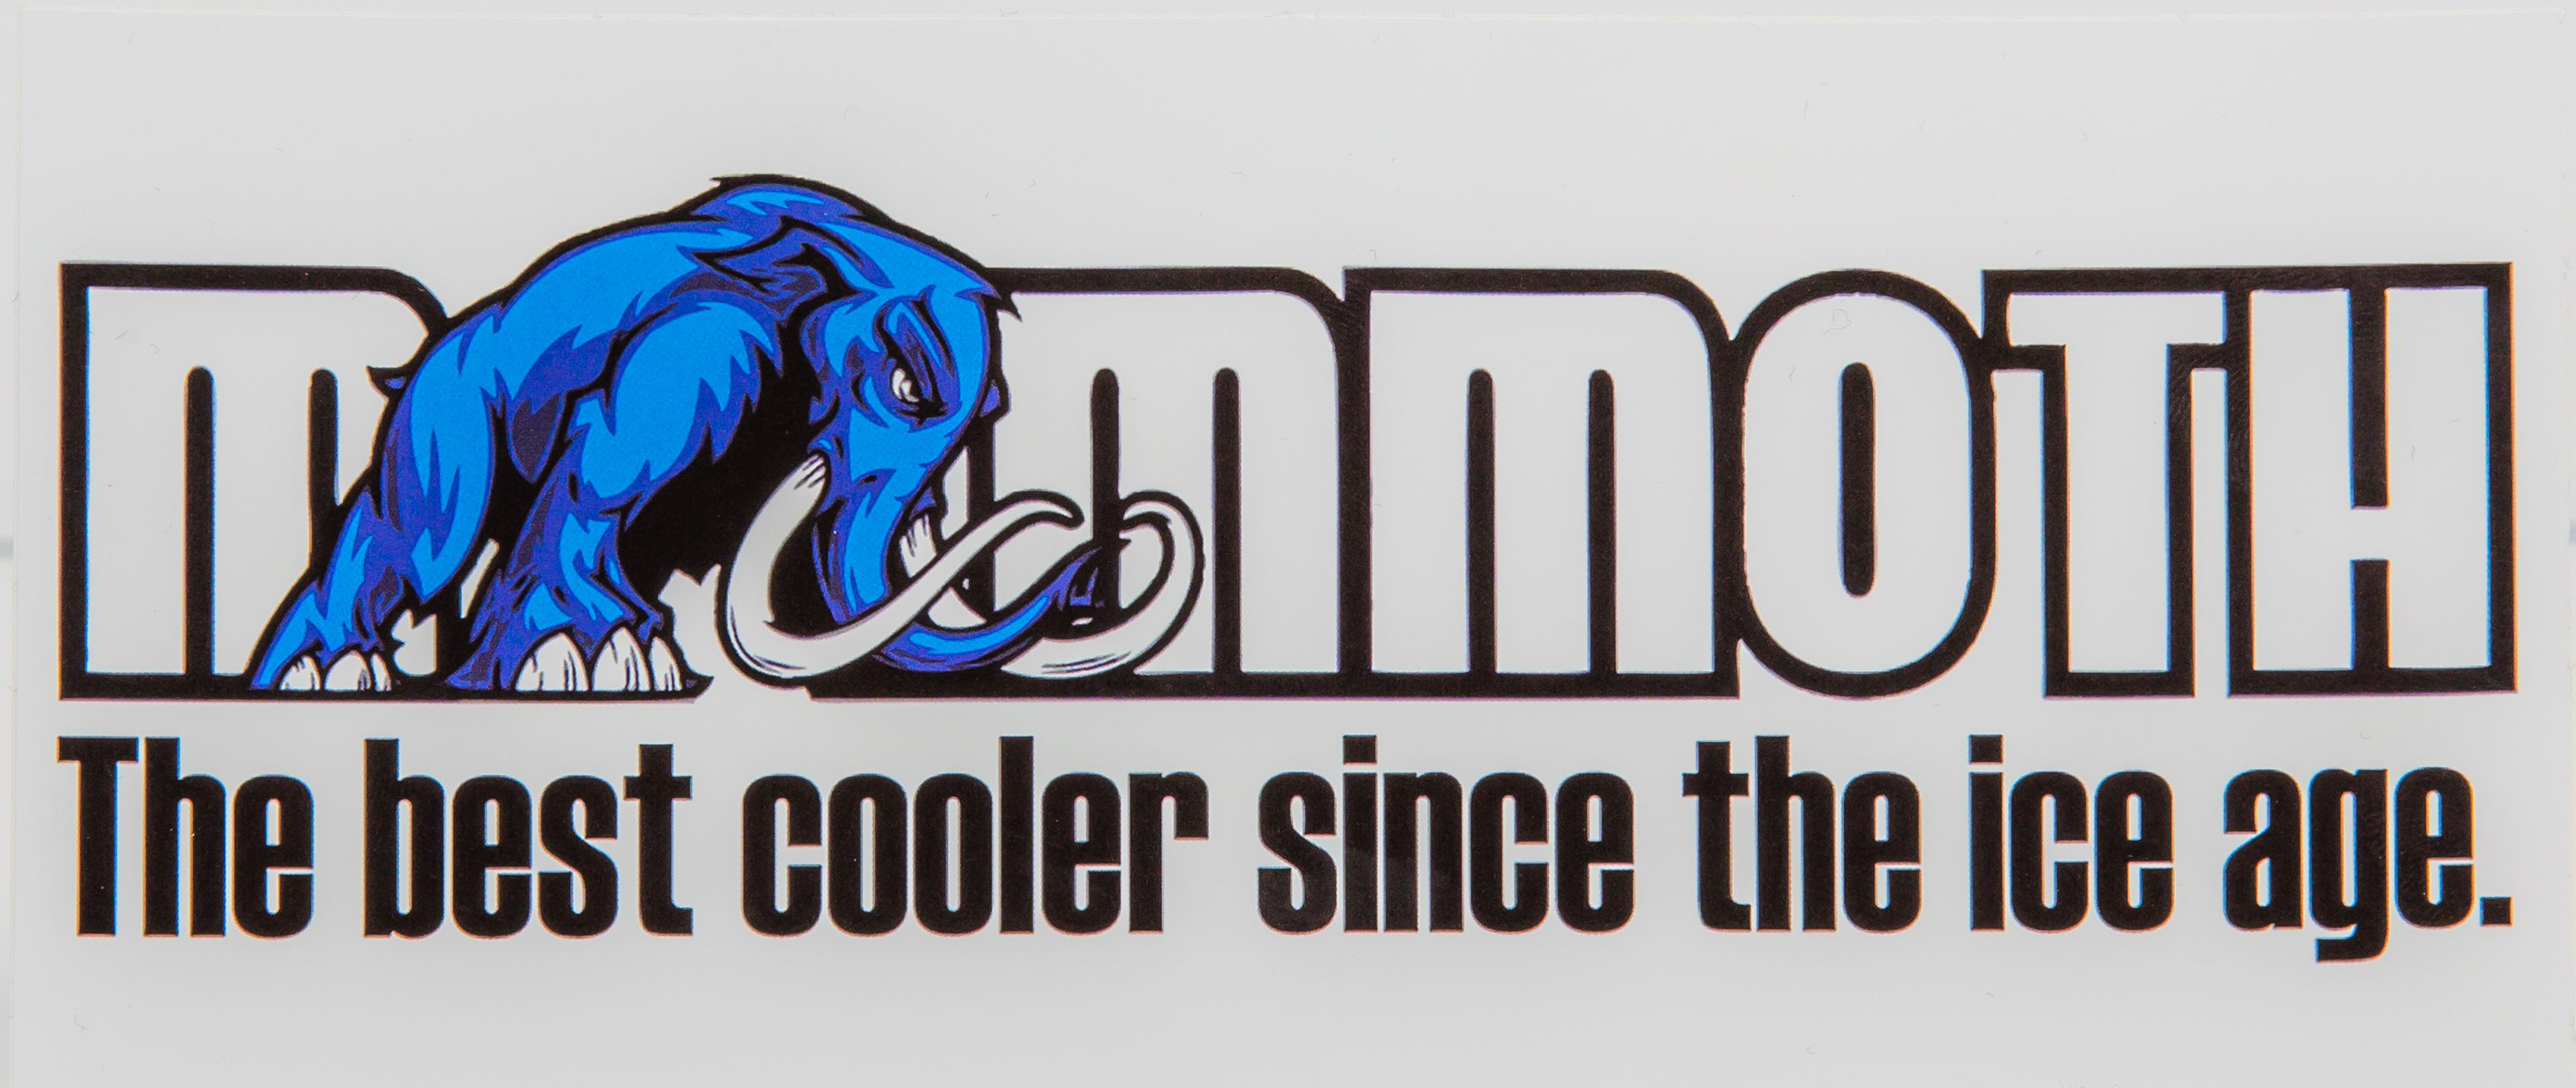 Mammoth Coolers Joins U.S. LawShield